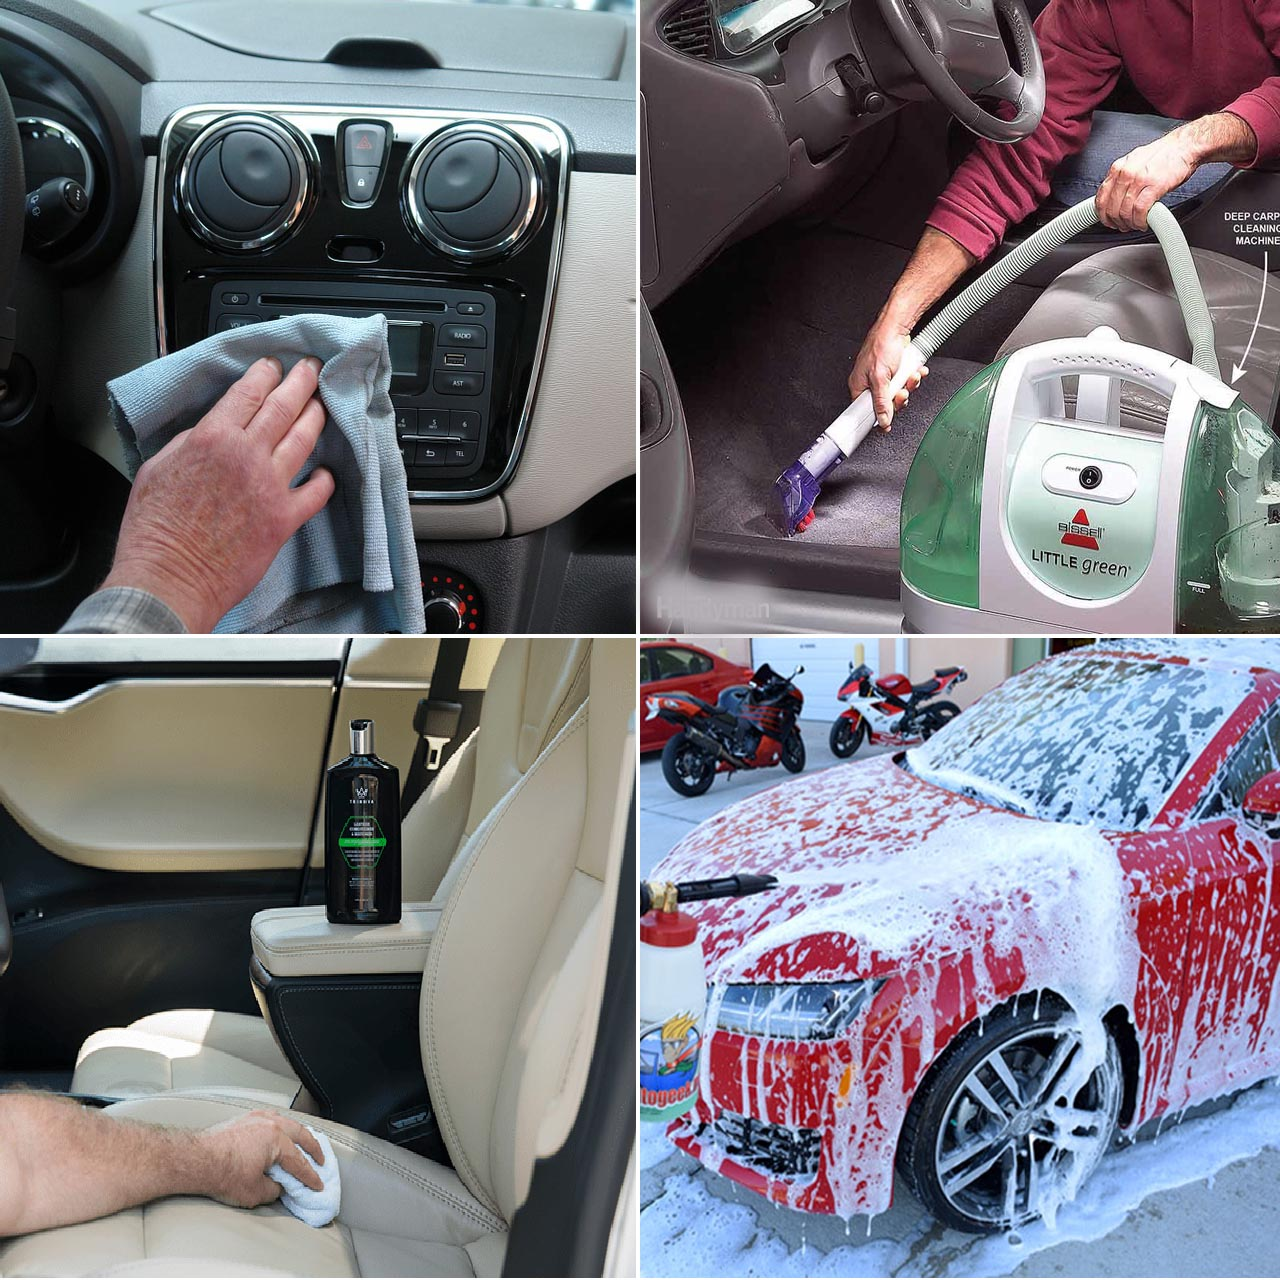 Proper Car Care - Inside and Out